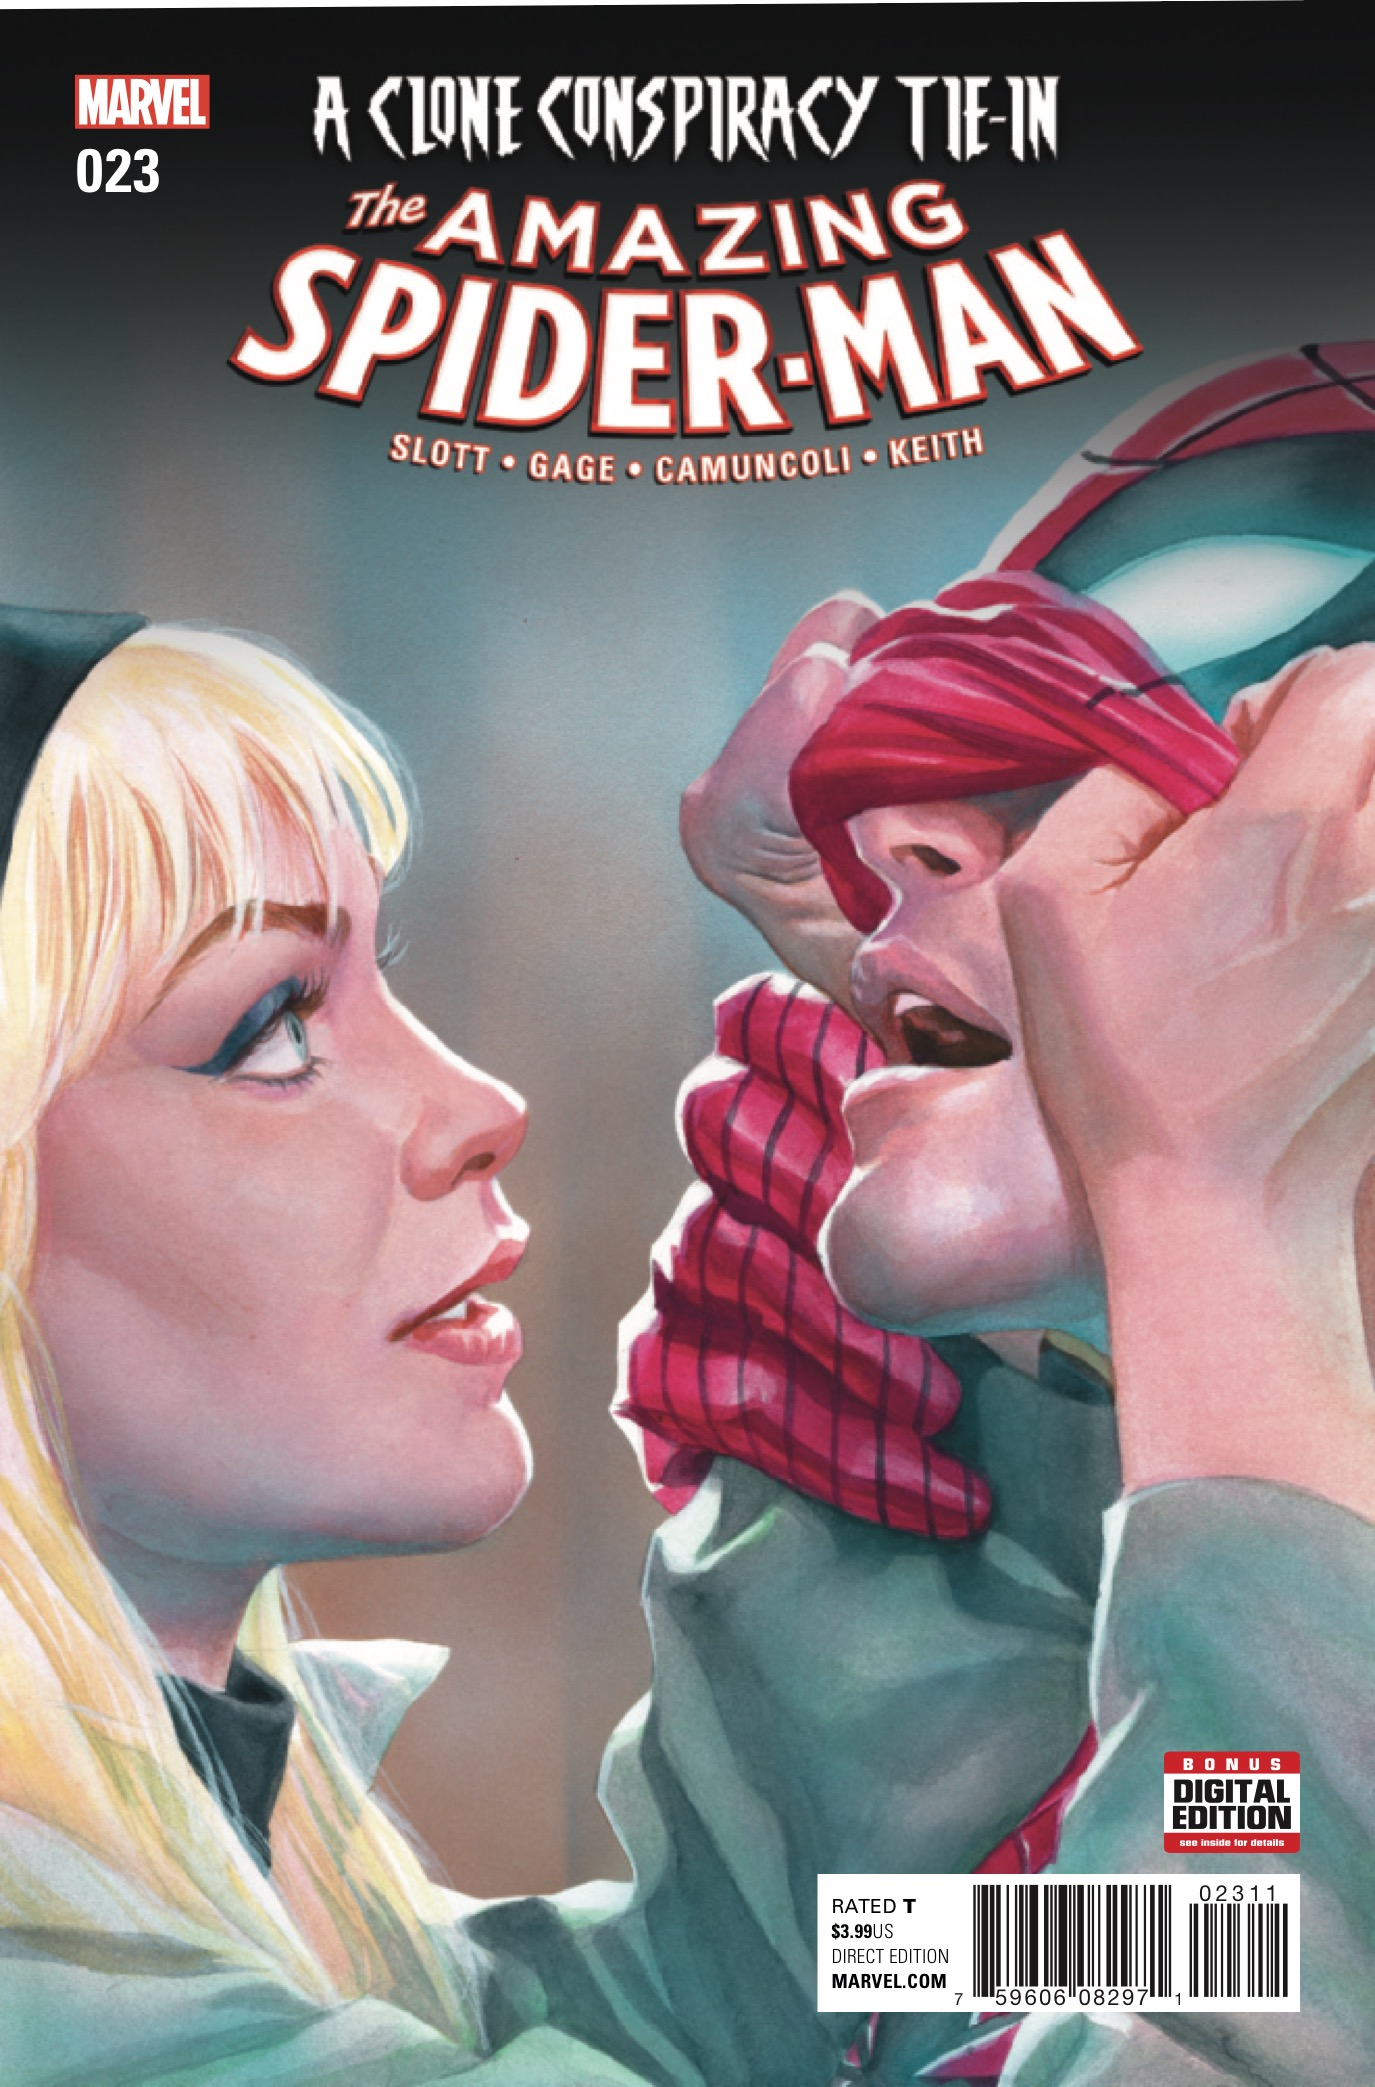 Amazing Spider-Man #23 Review